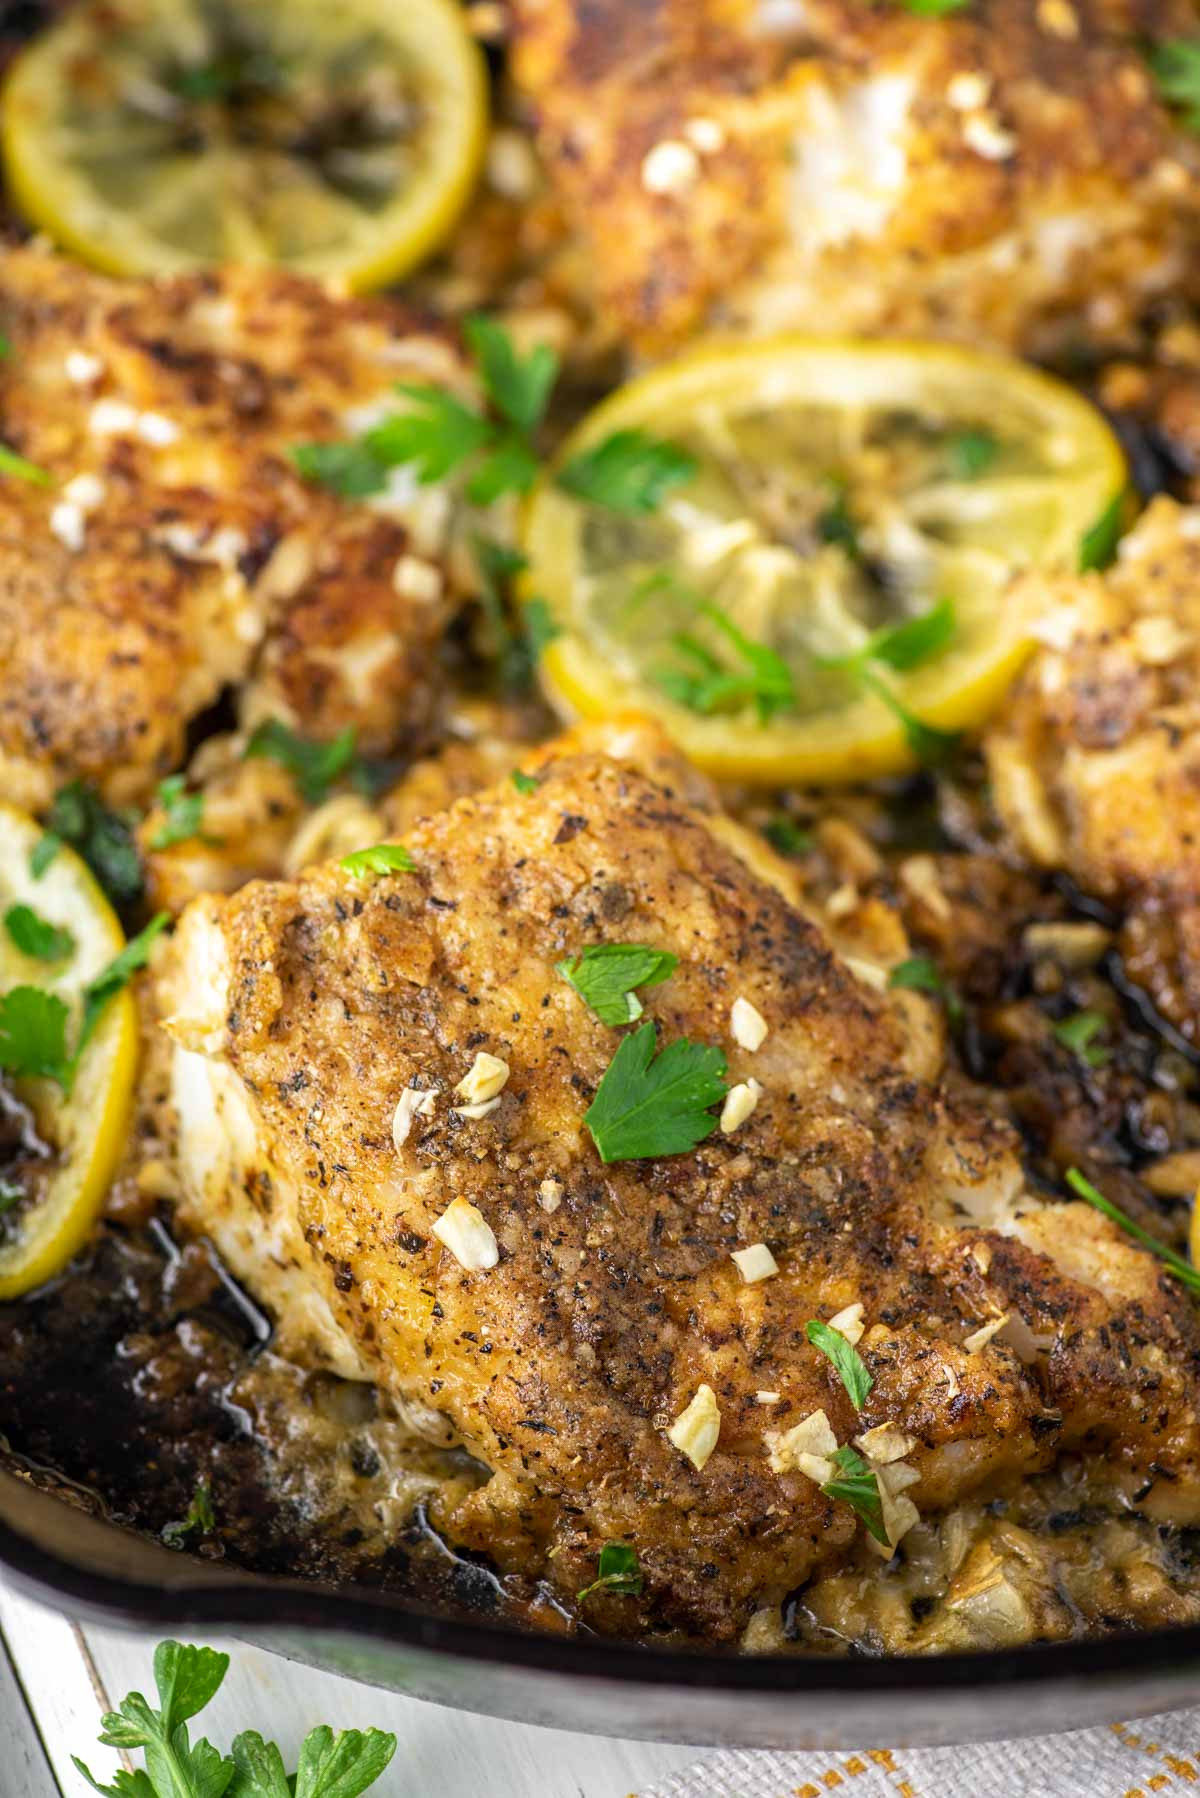 close-up of baked cod with lemons in skillet